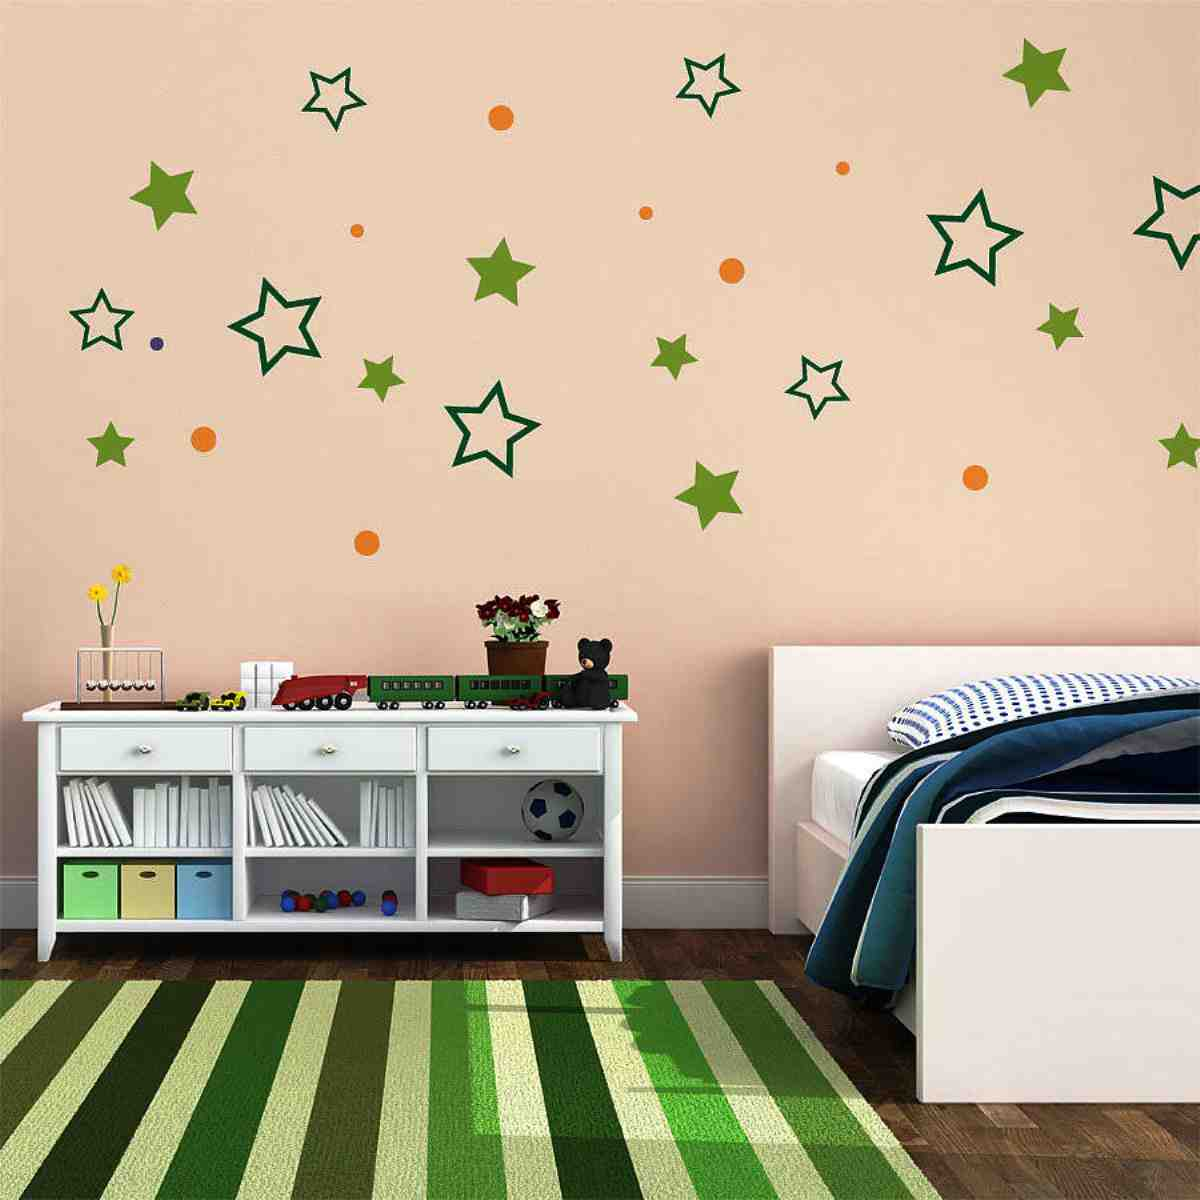 Easy Wall Design Ideas : Diy wall decor ideas for bedroom ideasdecor